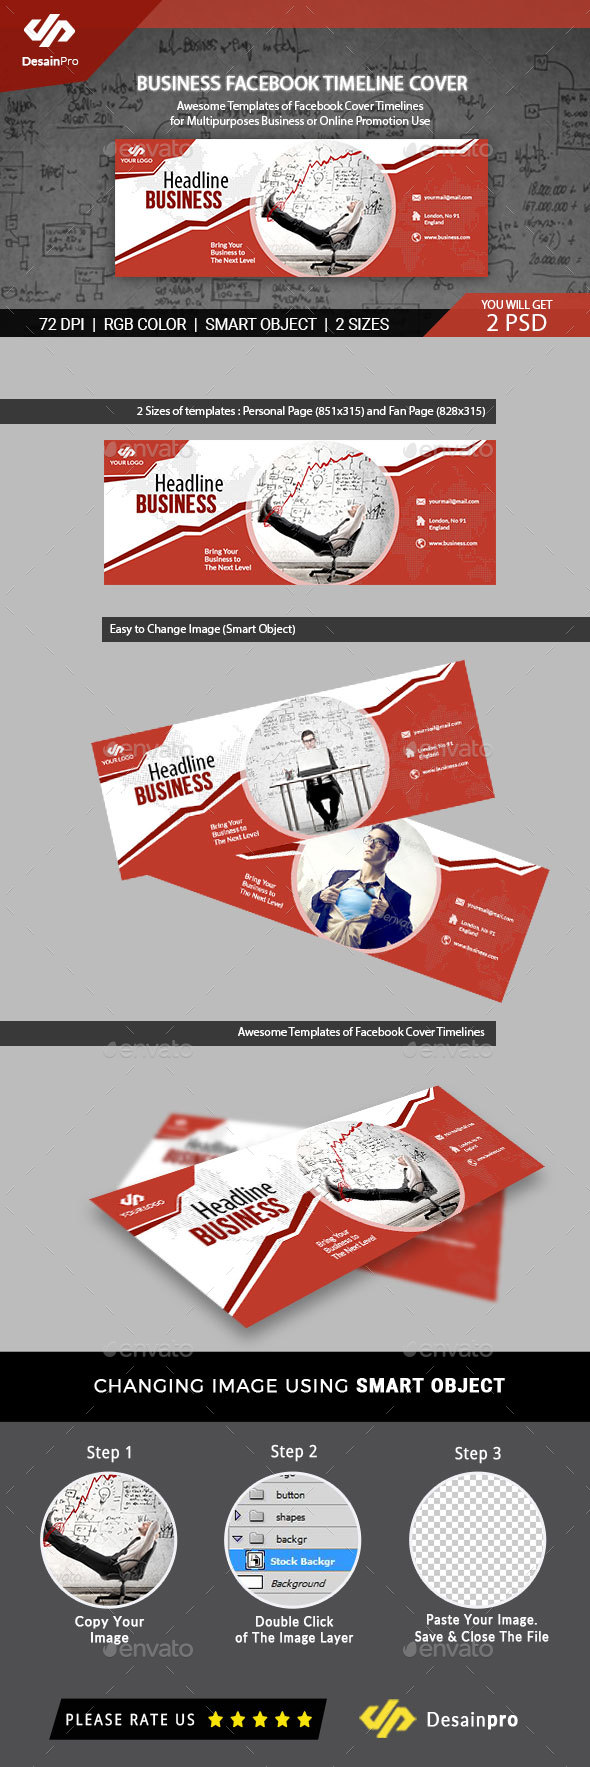 Business services facebook cover template ar by desainpro business services facebook cover template ar social media web elements pronofoot35fo Image collections